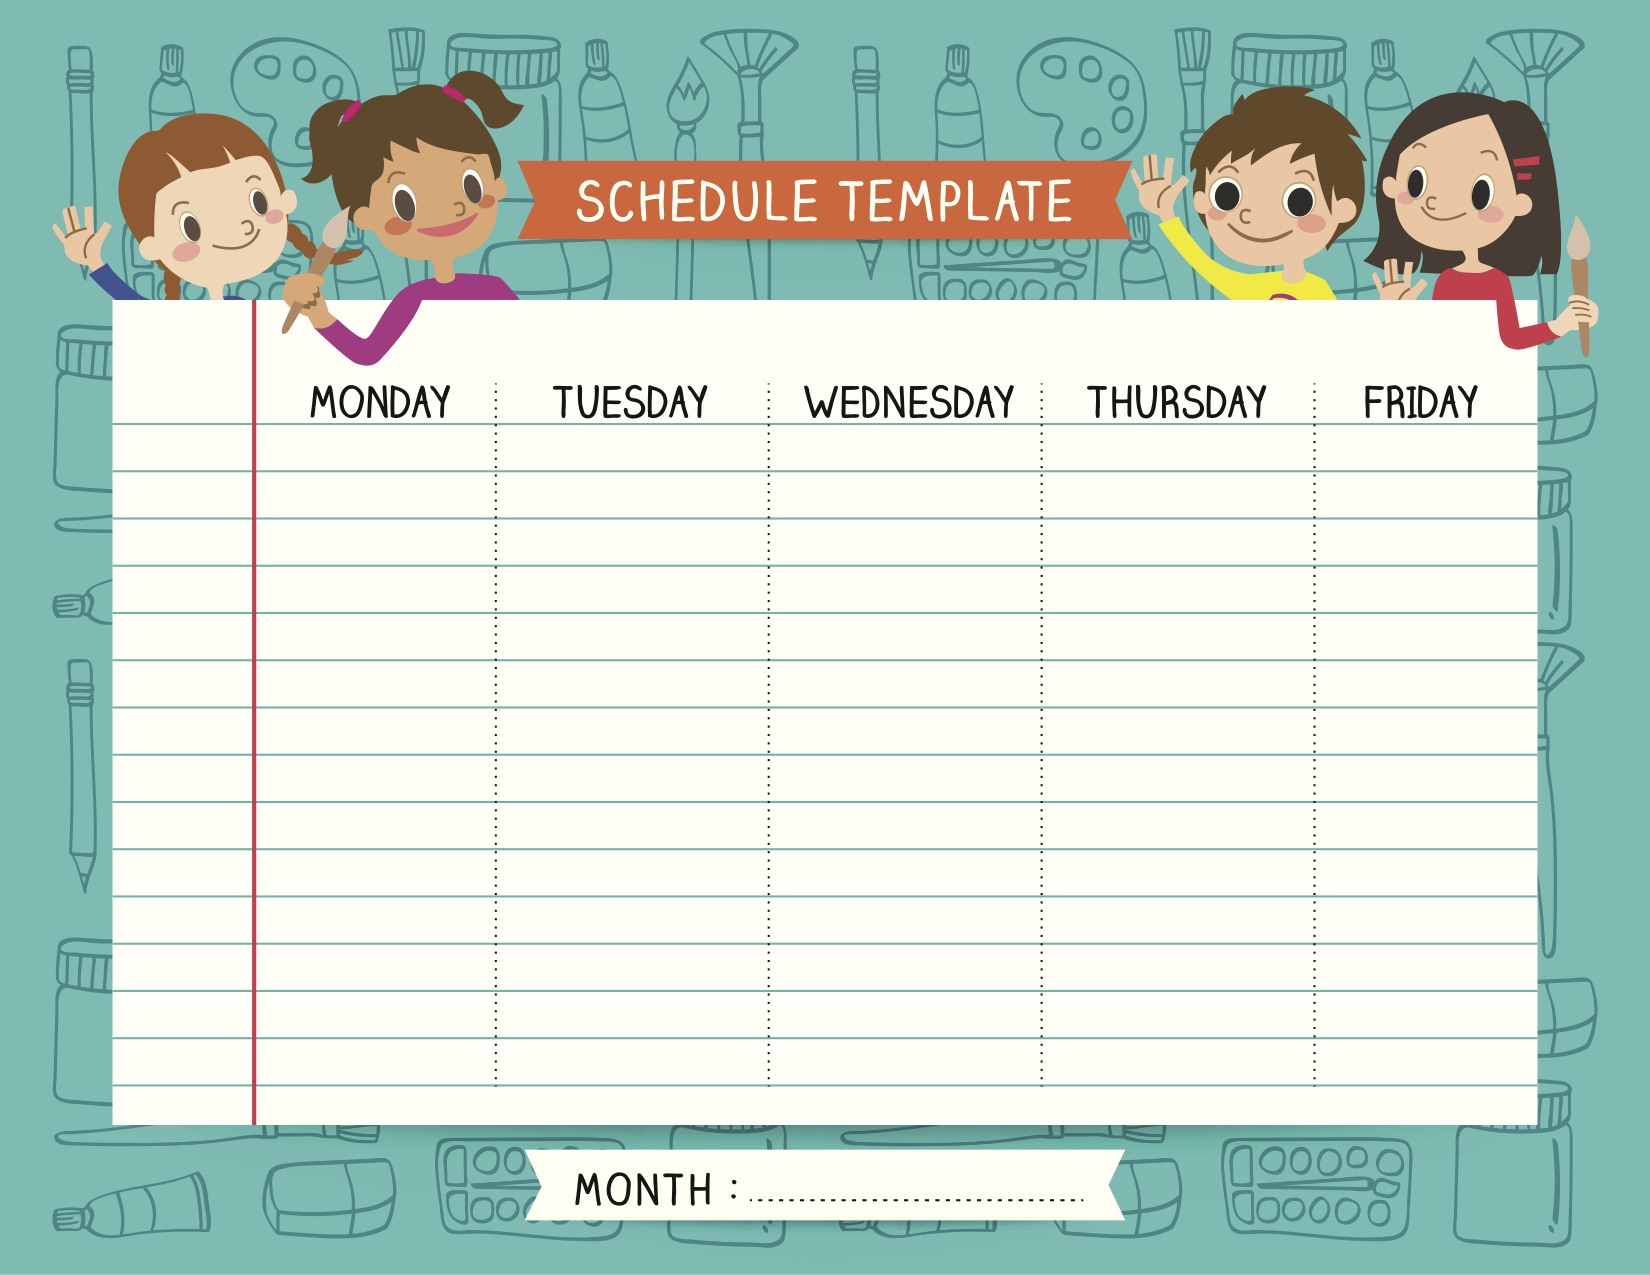 Schedule Of Works Template from banyangloballearning.files.wordpress.com